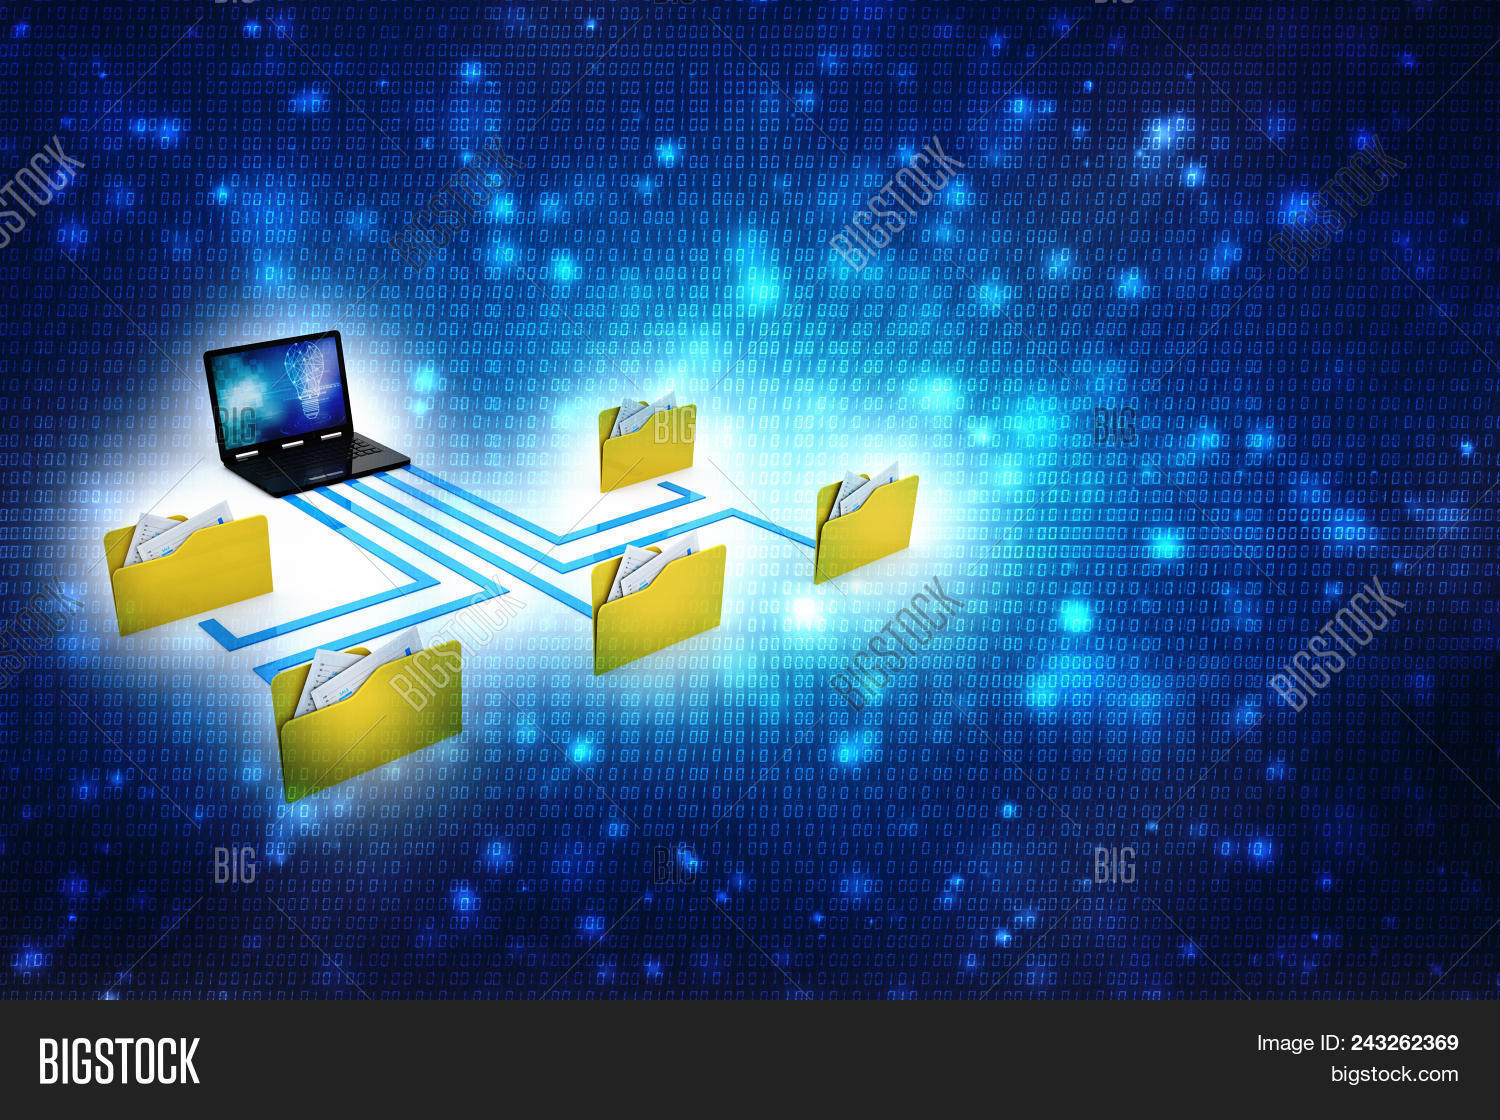 3d File Sharing Image & Photo (Free Trial) | Bigstock